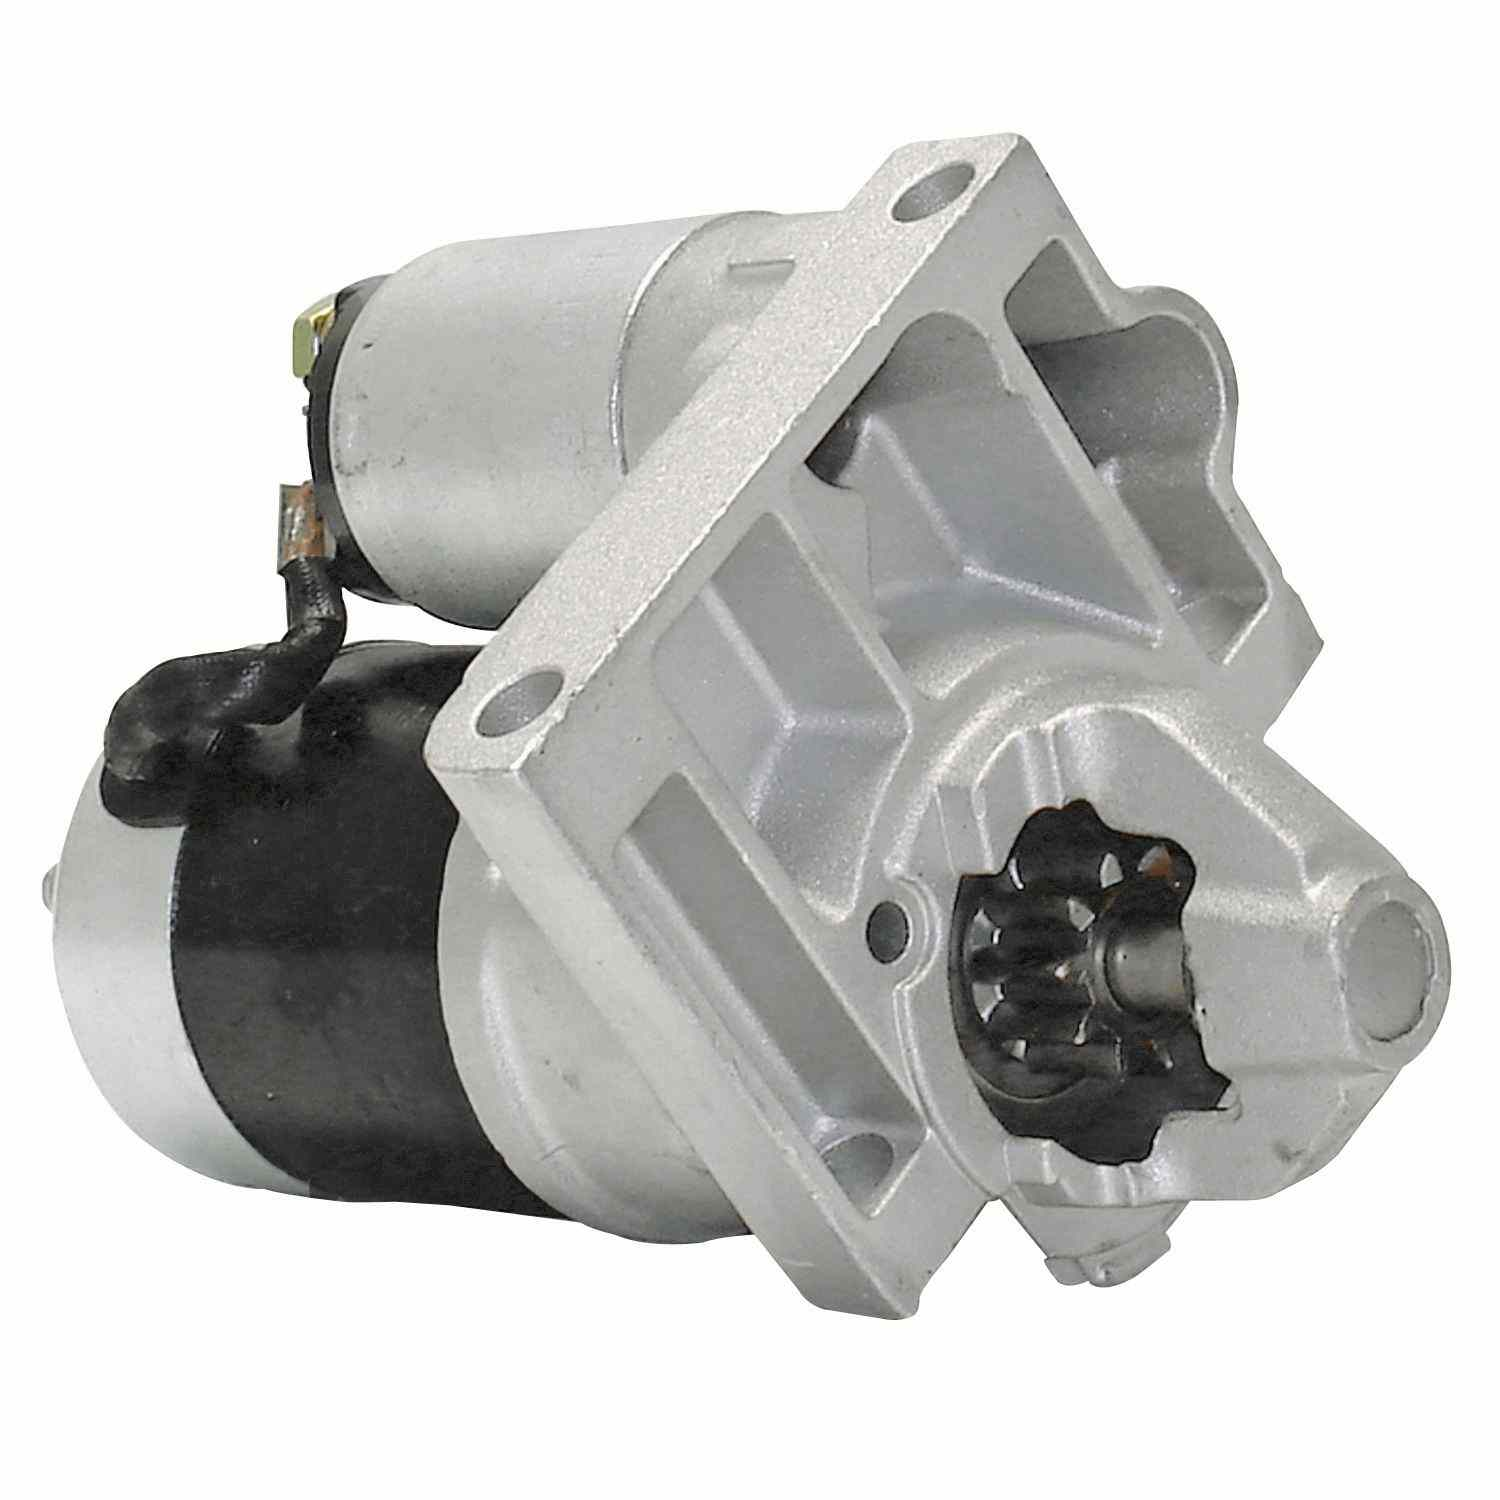 ACDELCO GOLD/PROFESSIONAL - Reman Starter Motor - DCC 336-1723